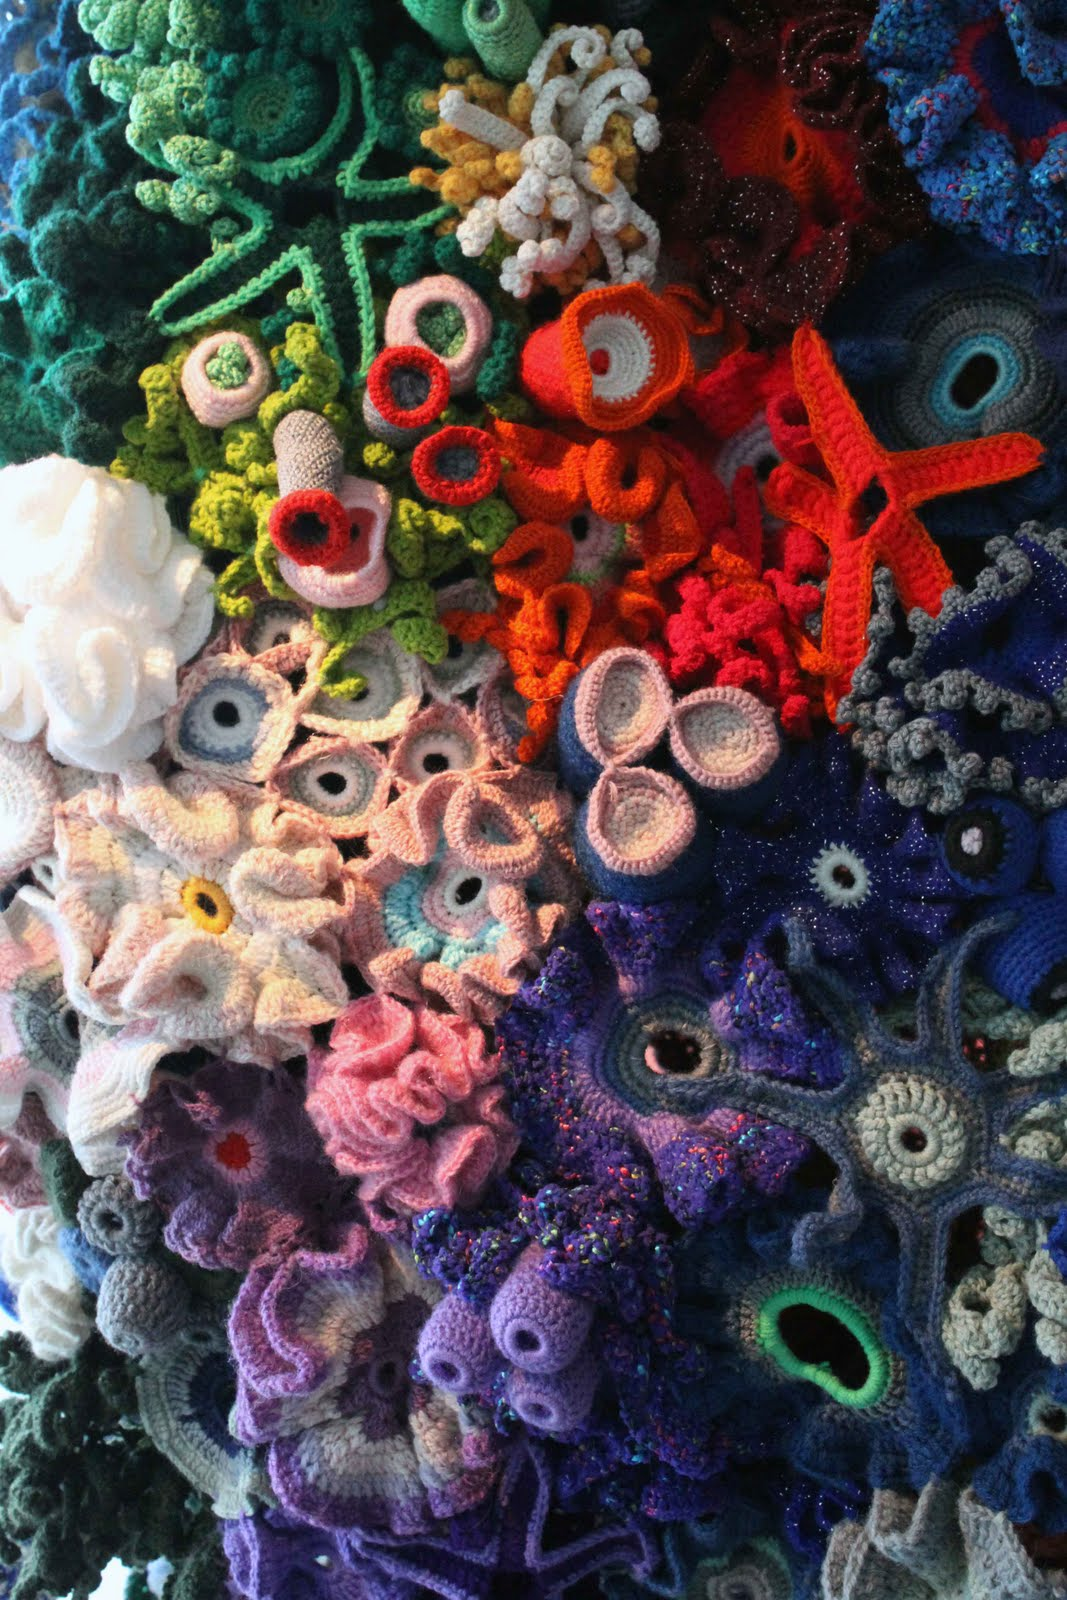 Crochet Coral Reef : The Station Spin: Hyperbolic Crochet Coral Reef